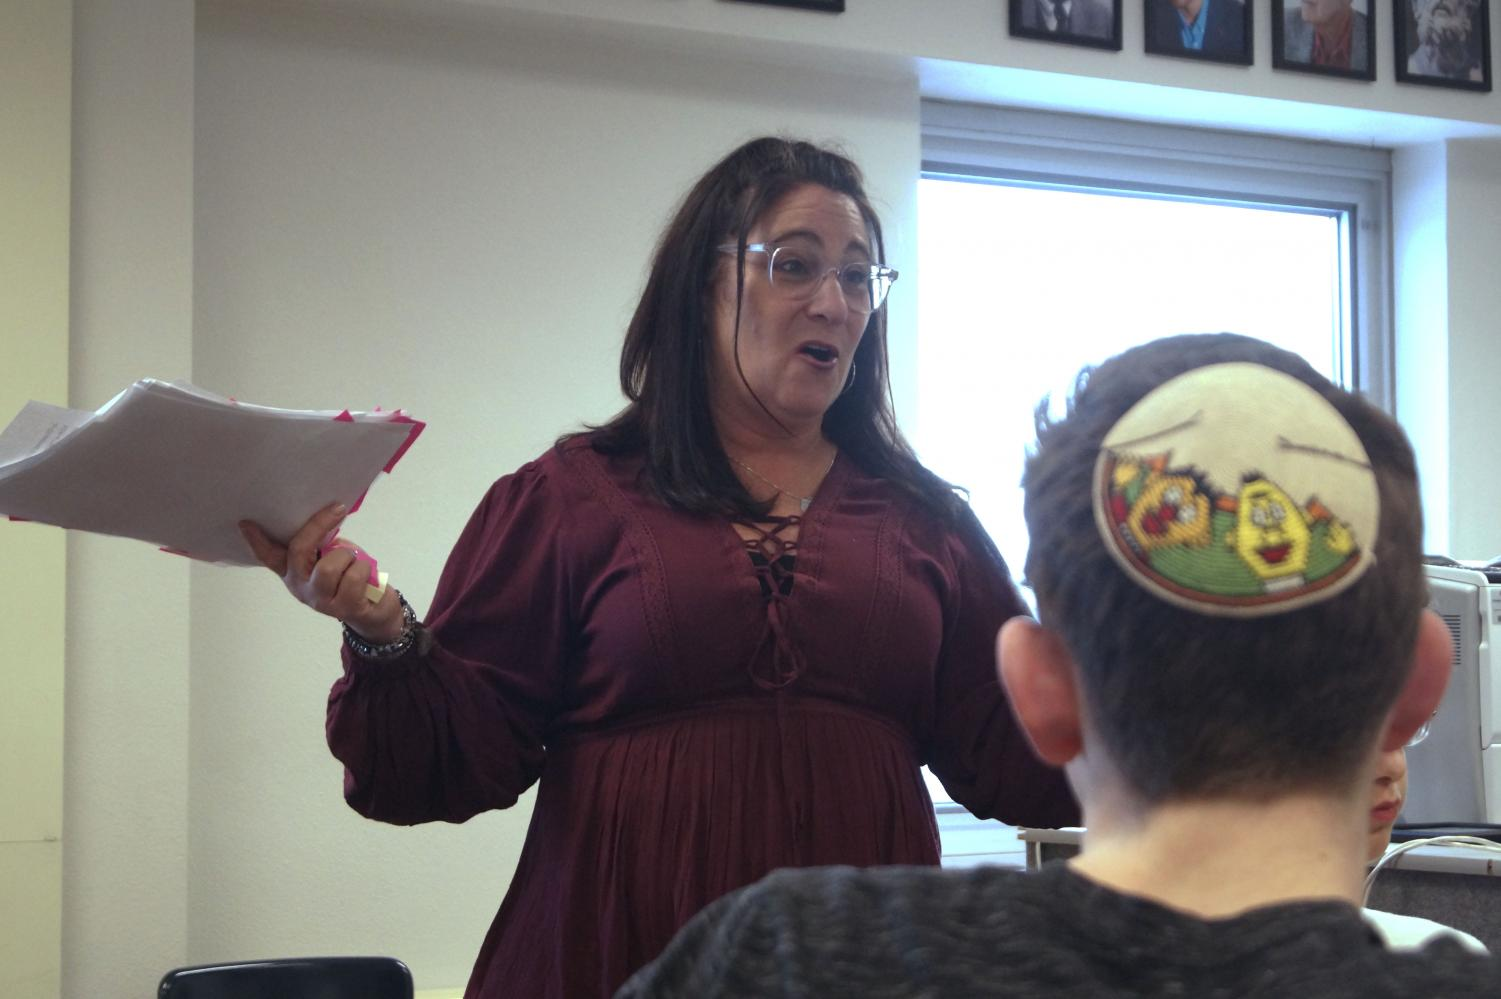 Associate director of education at Jewish National Fund Amy Cytron gives a talk to students in the Jewish Student Union March 7. Cytron talked about Israeli inventions and other facts about Israel to students in attendance.